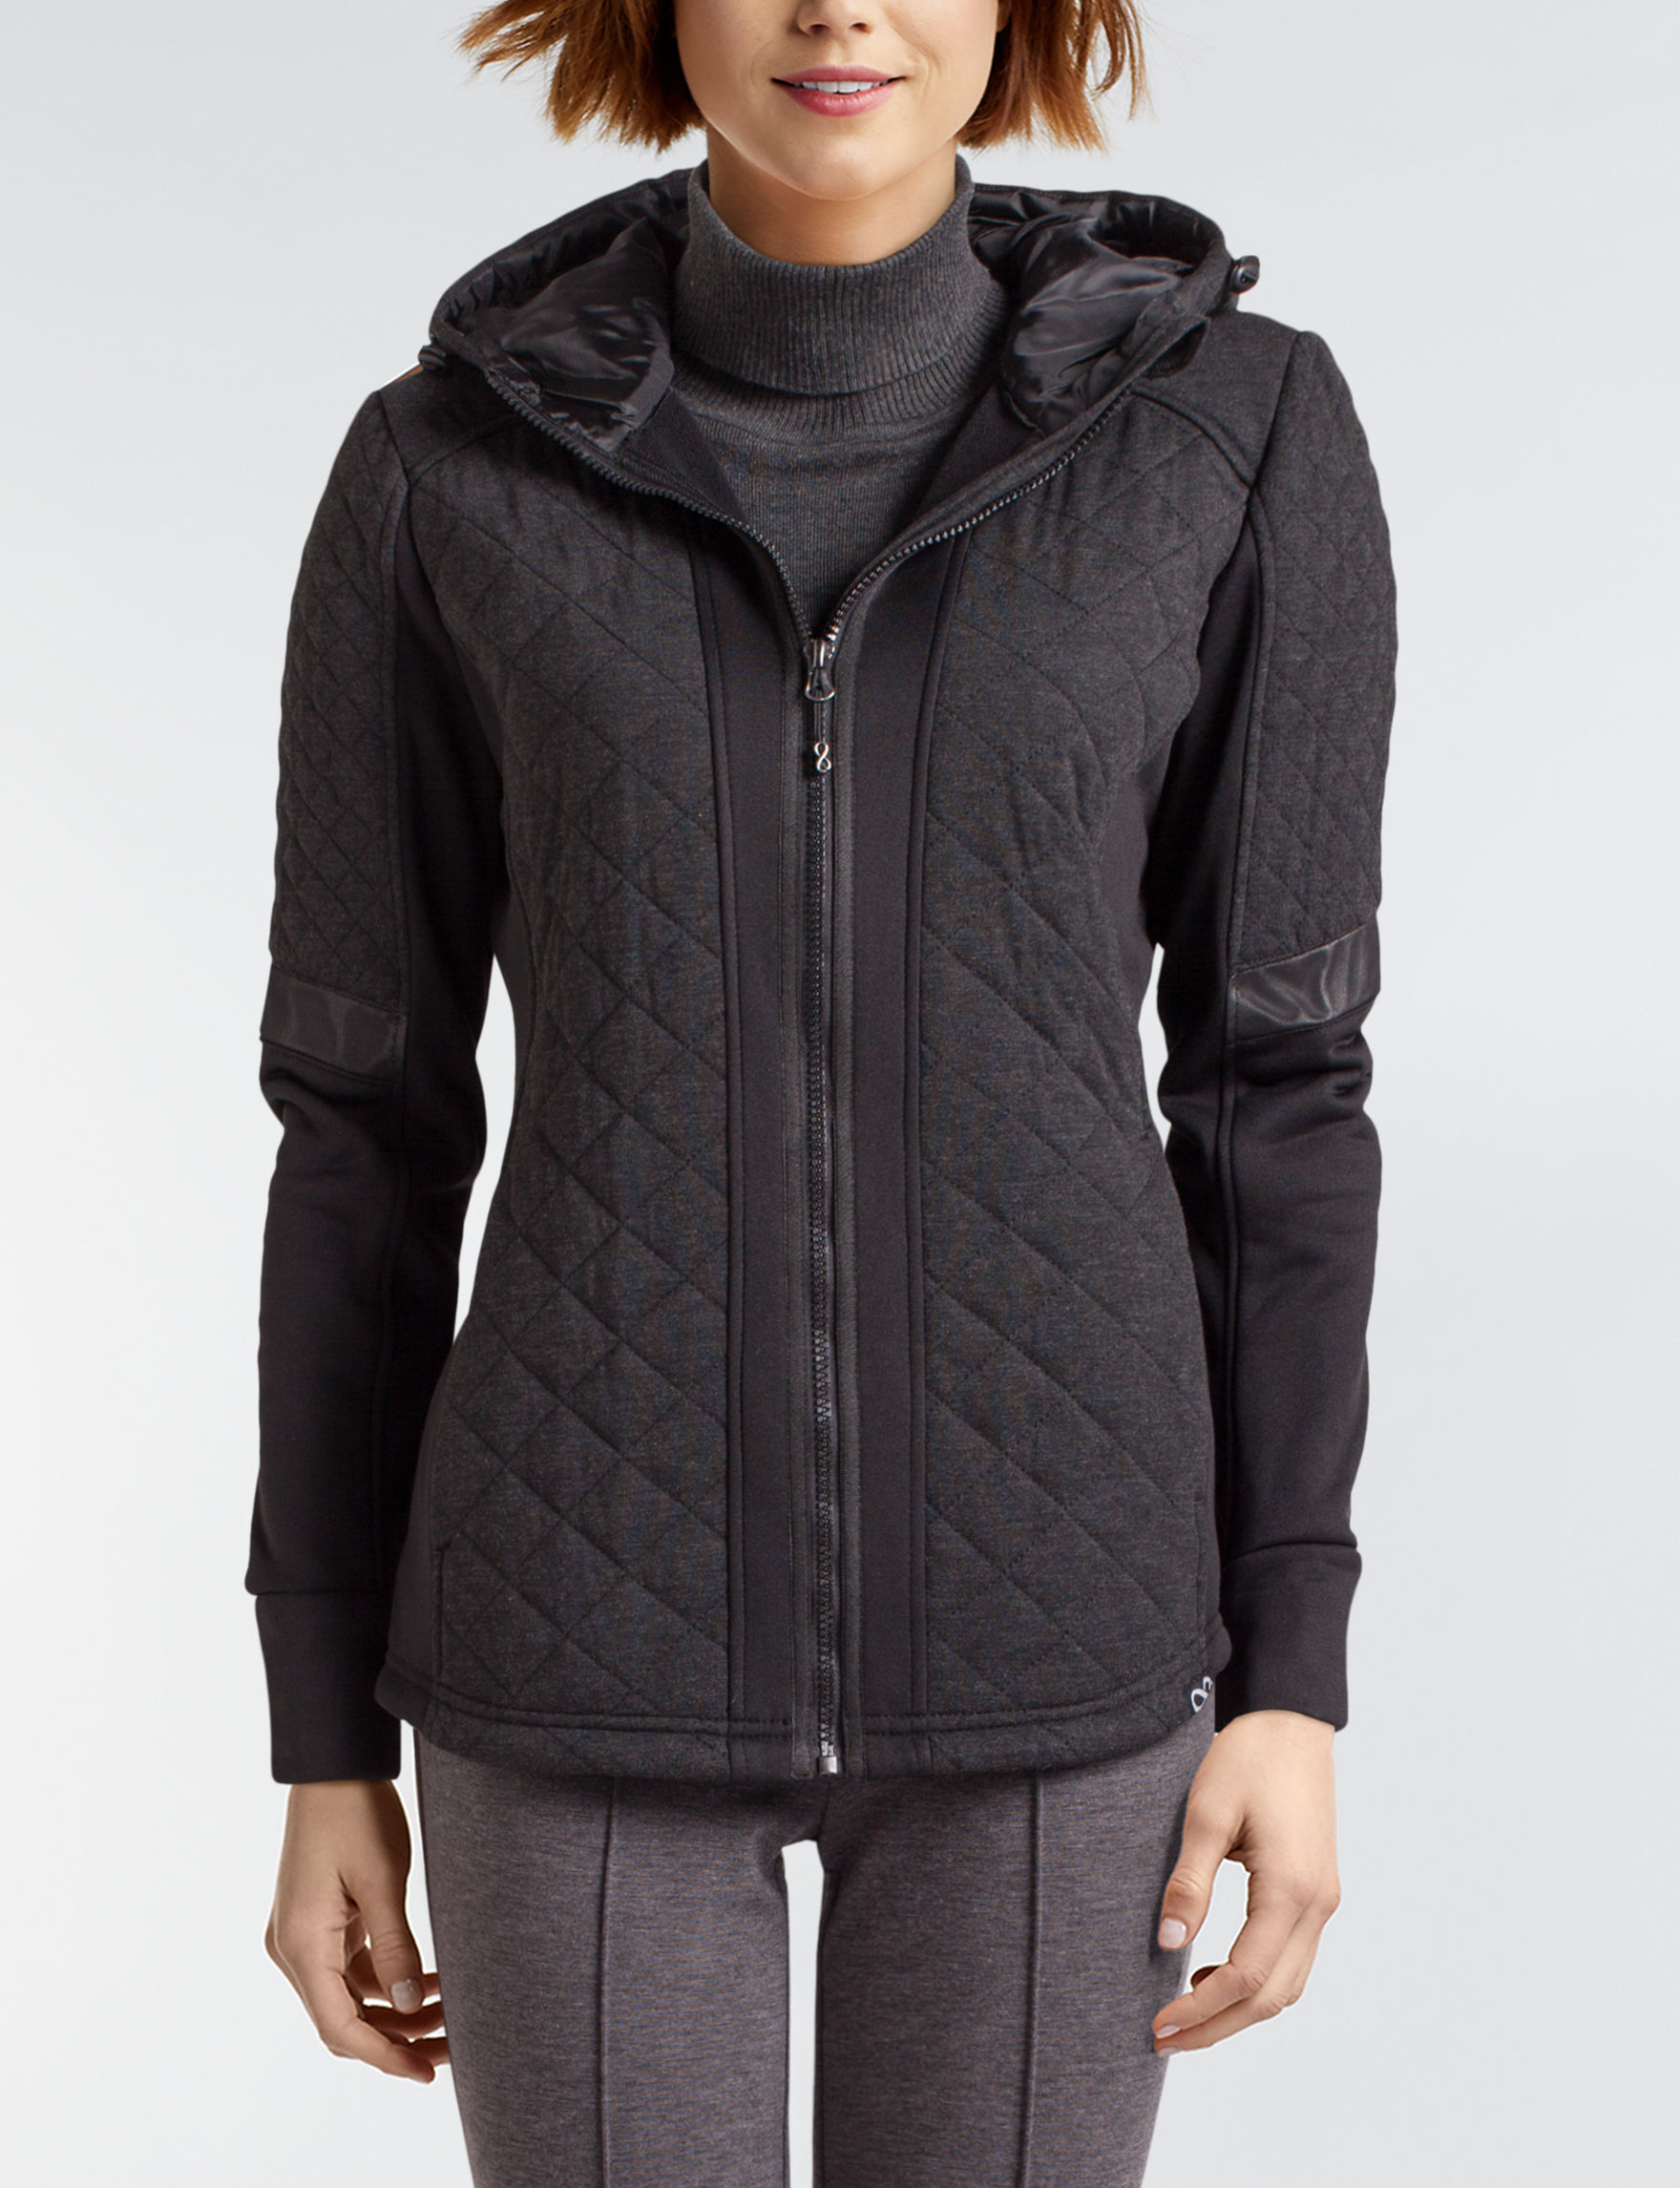 Be Boundless Charcoal Puffer & Quilted Jackets